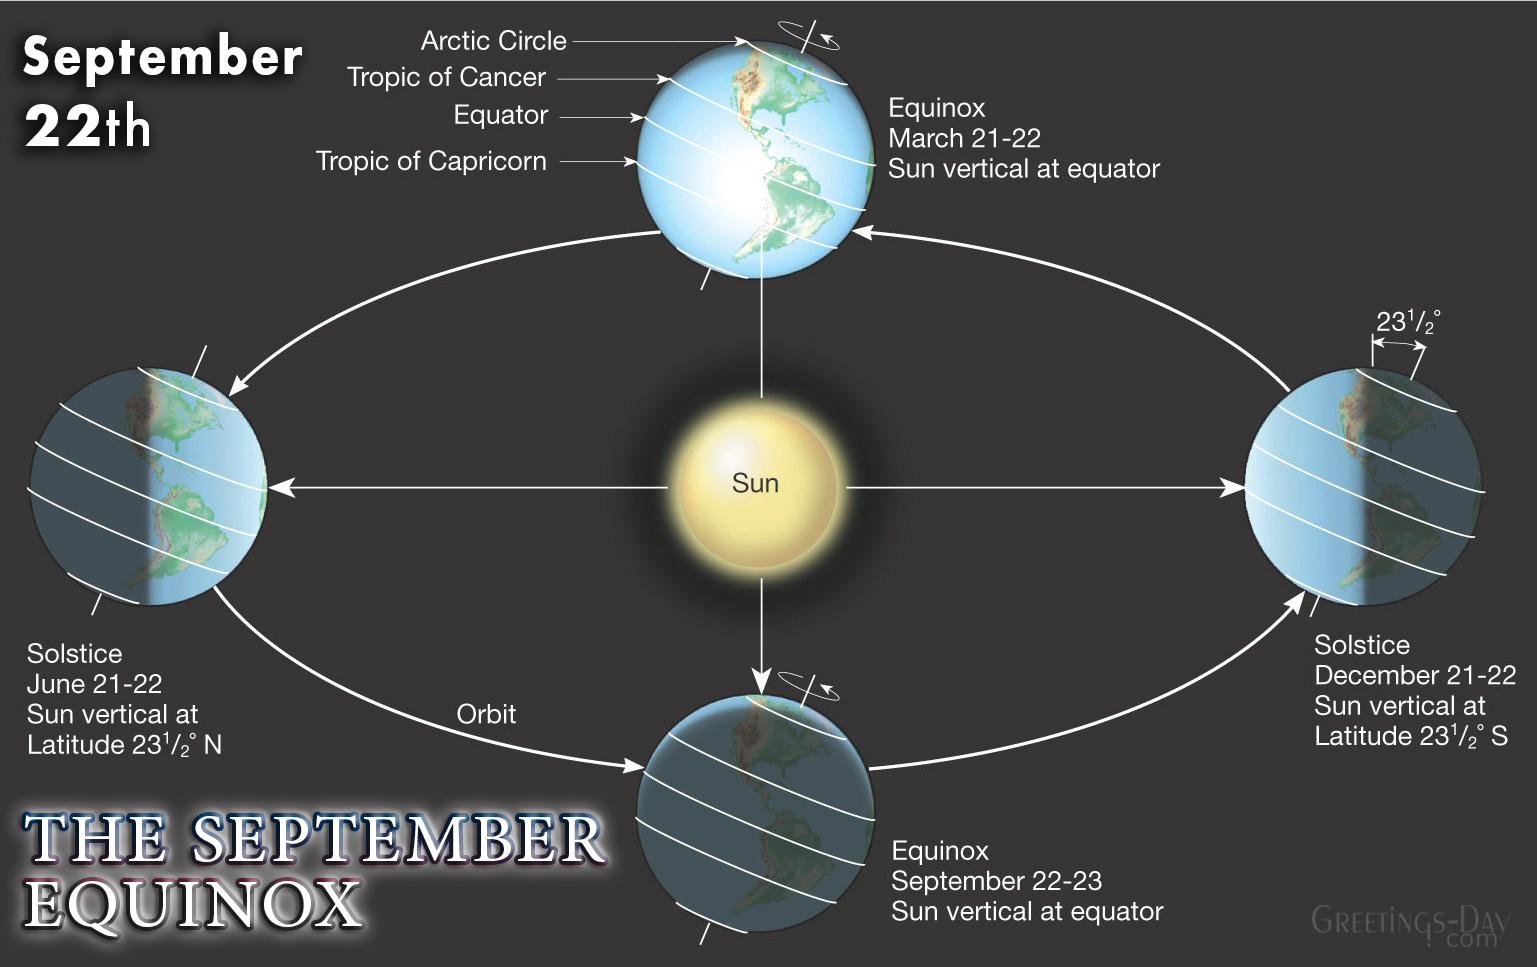 The September Equinox